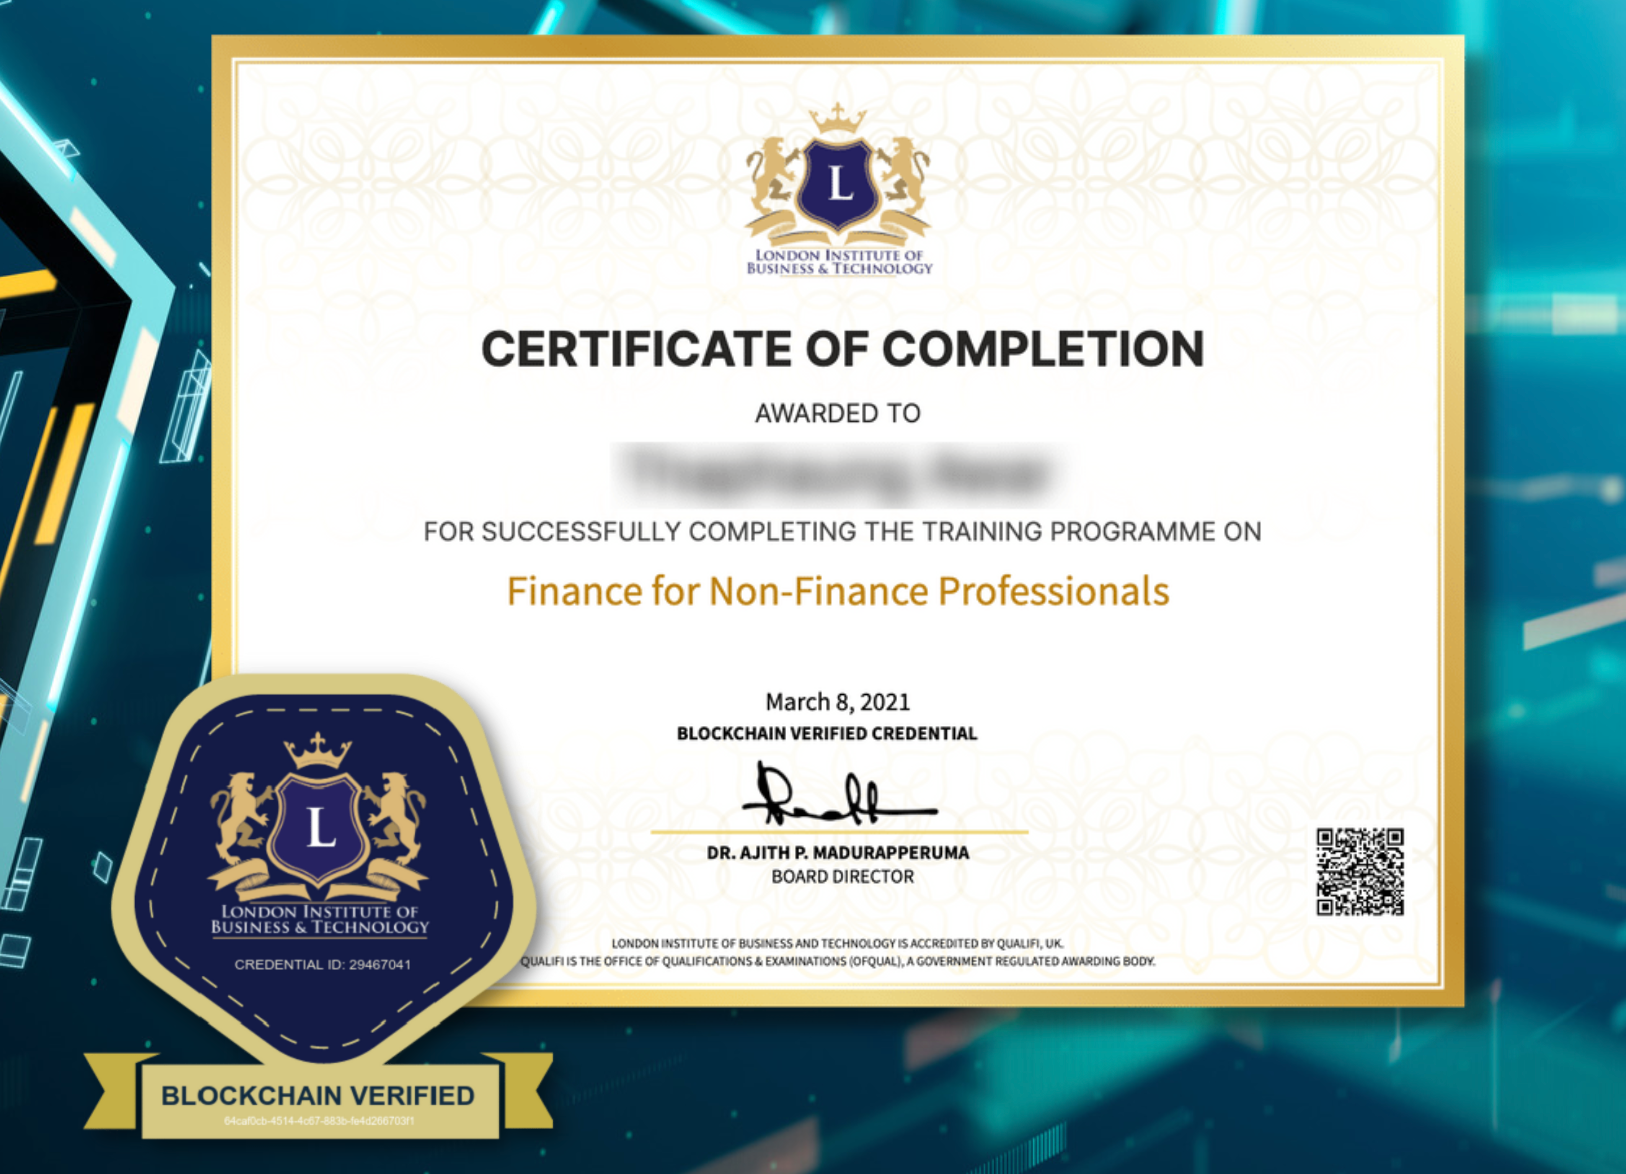 LIBT Launches Blockchain-based Certification To Counter Academic Fraud